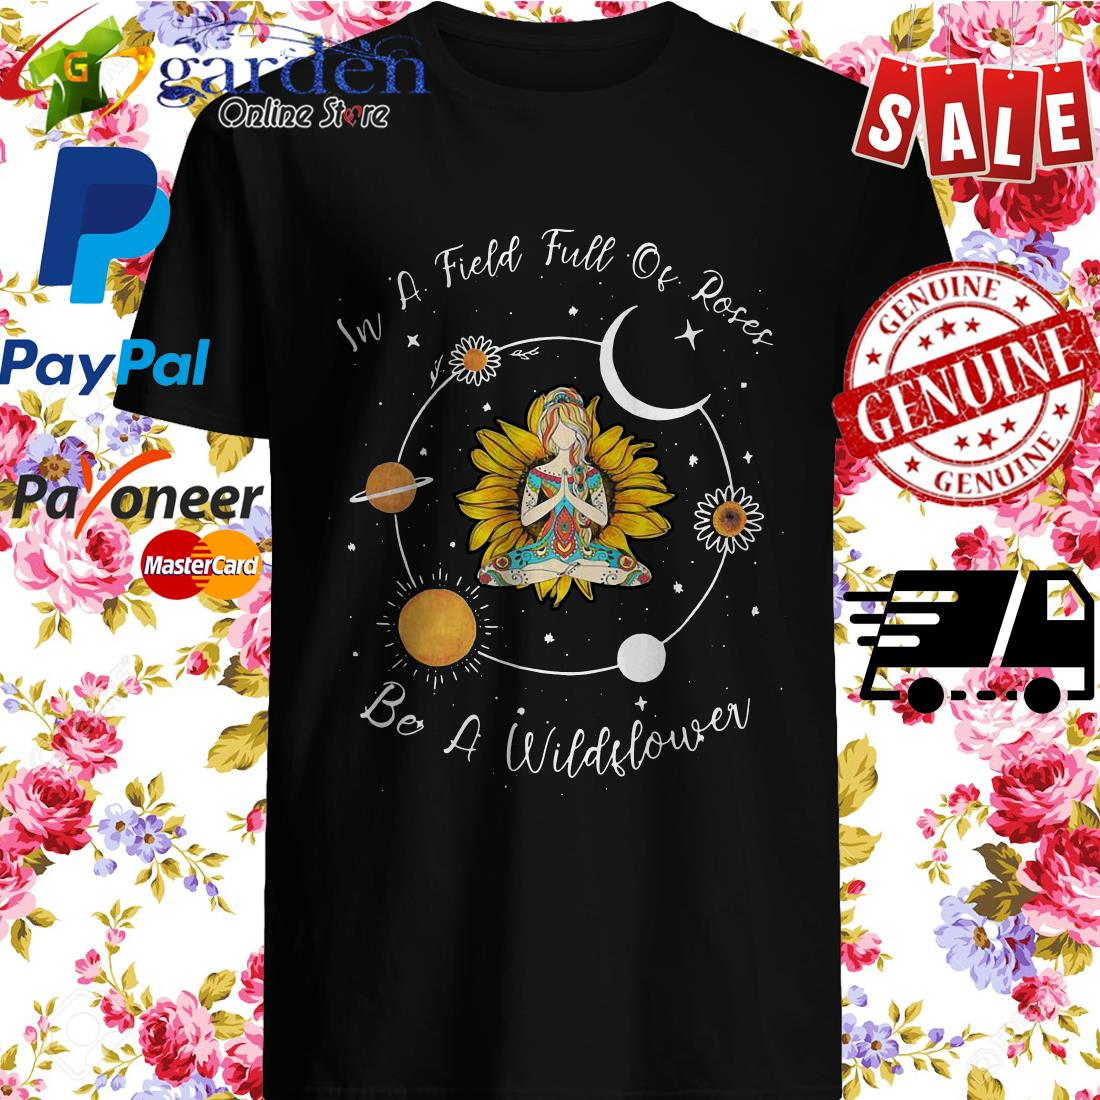 Yoga Girl Sunflower In A Field Full Of Roses Be A Wildflower Shirt